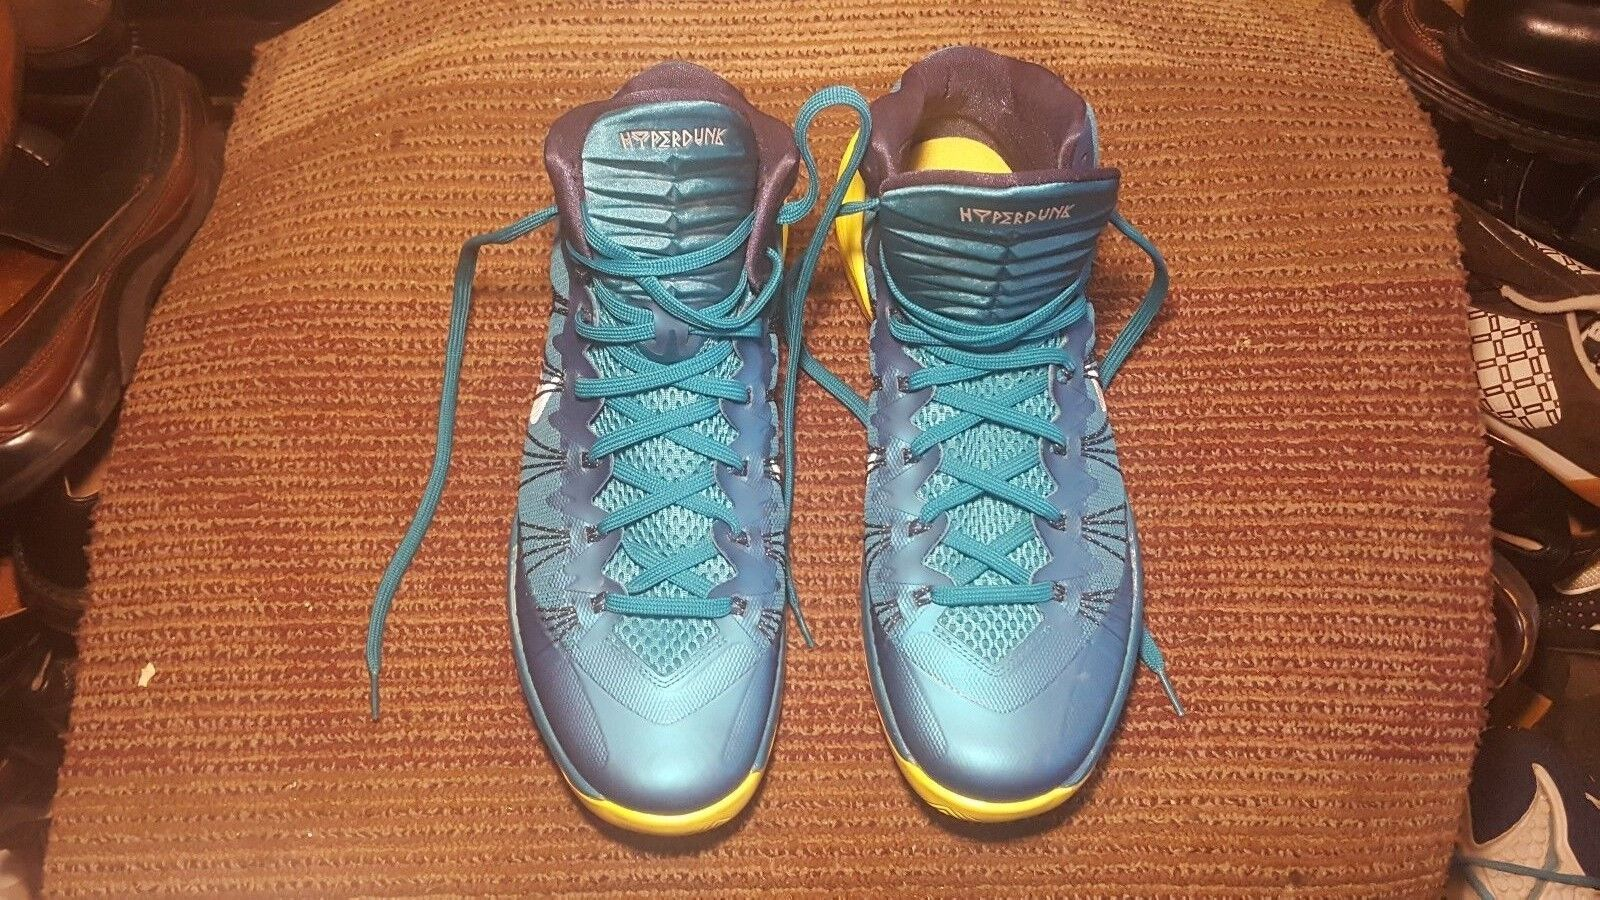 NEW NIKE HYPERDUNK MEN BASKETBALL SHOES US M M TROPICAL TEAL YELLOW